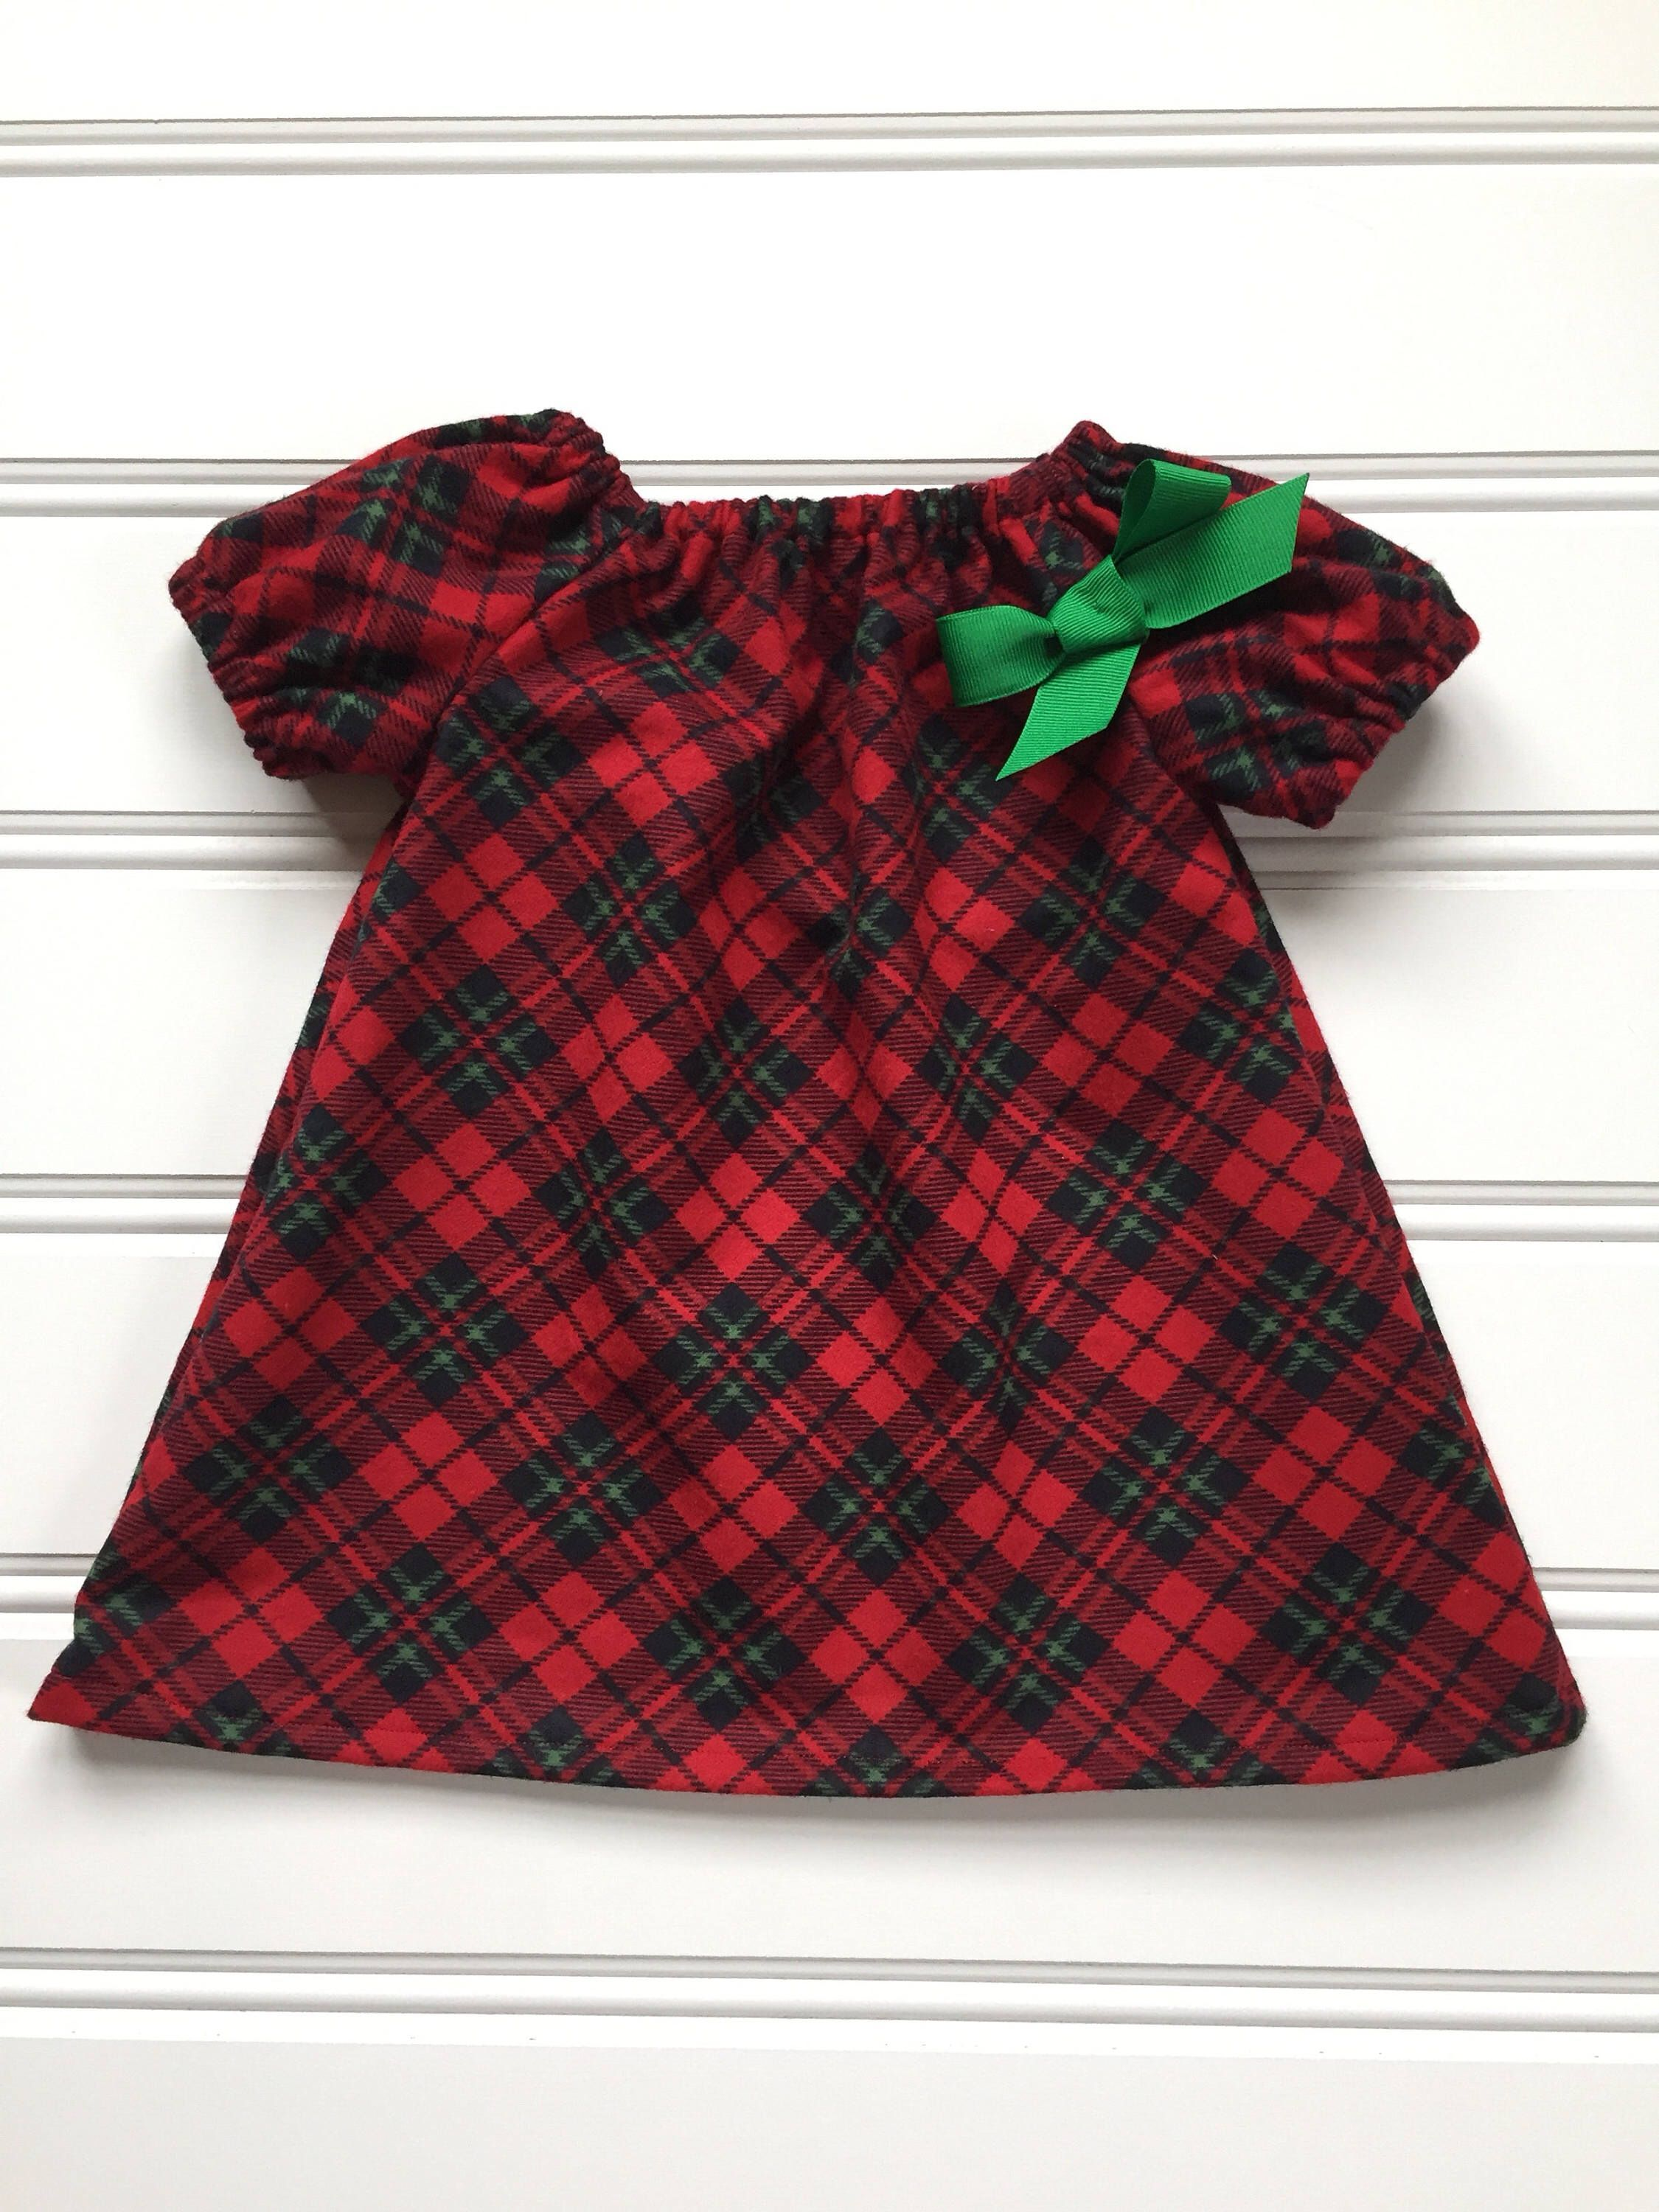 Plaid Christmas Dress for Girl Flannel Baby Christmas Dress Girl